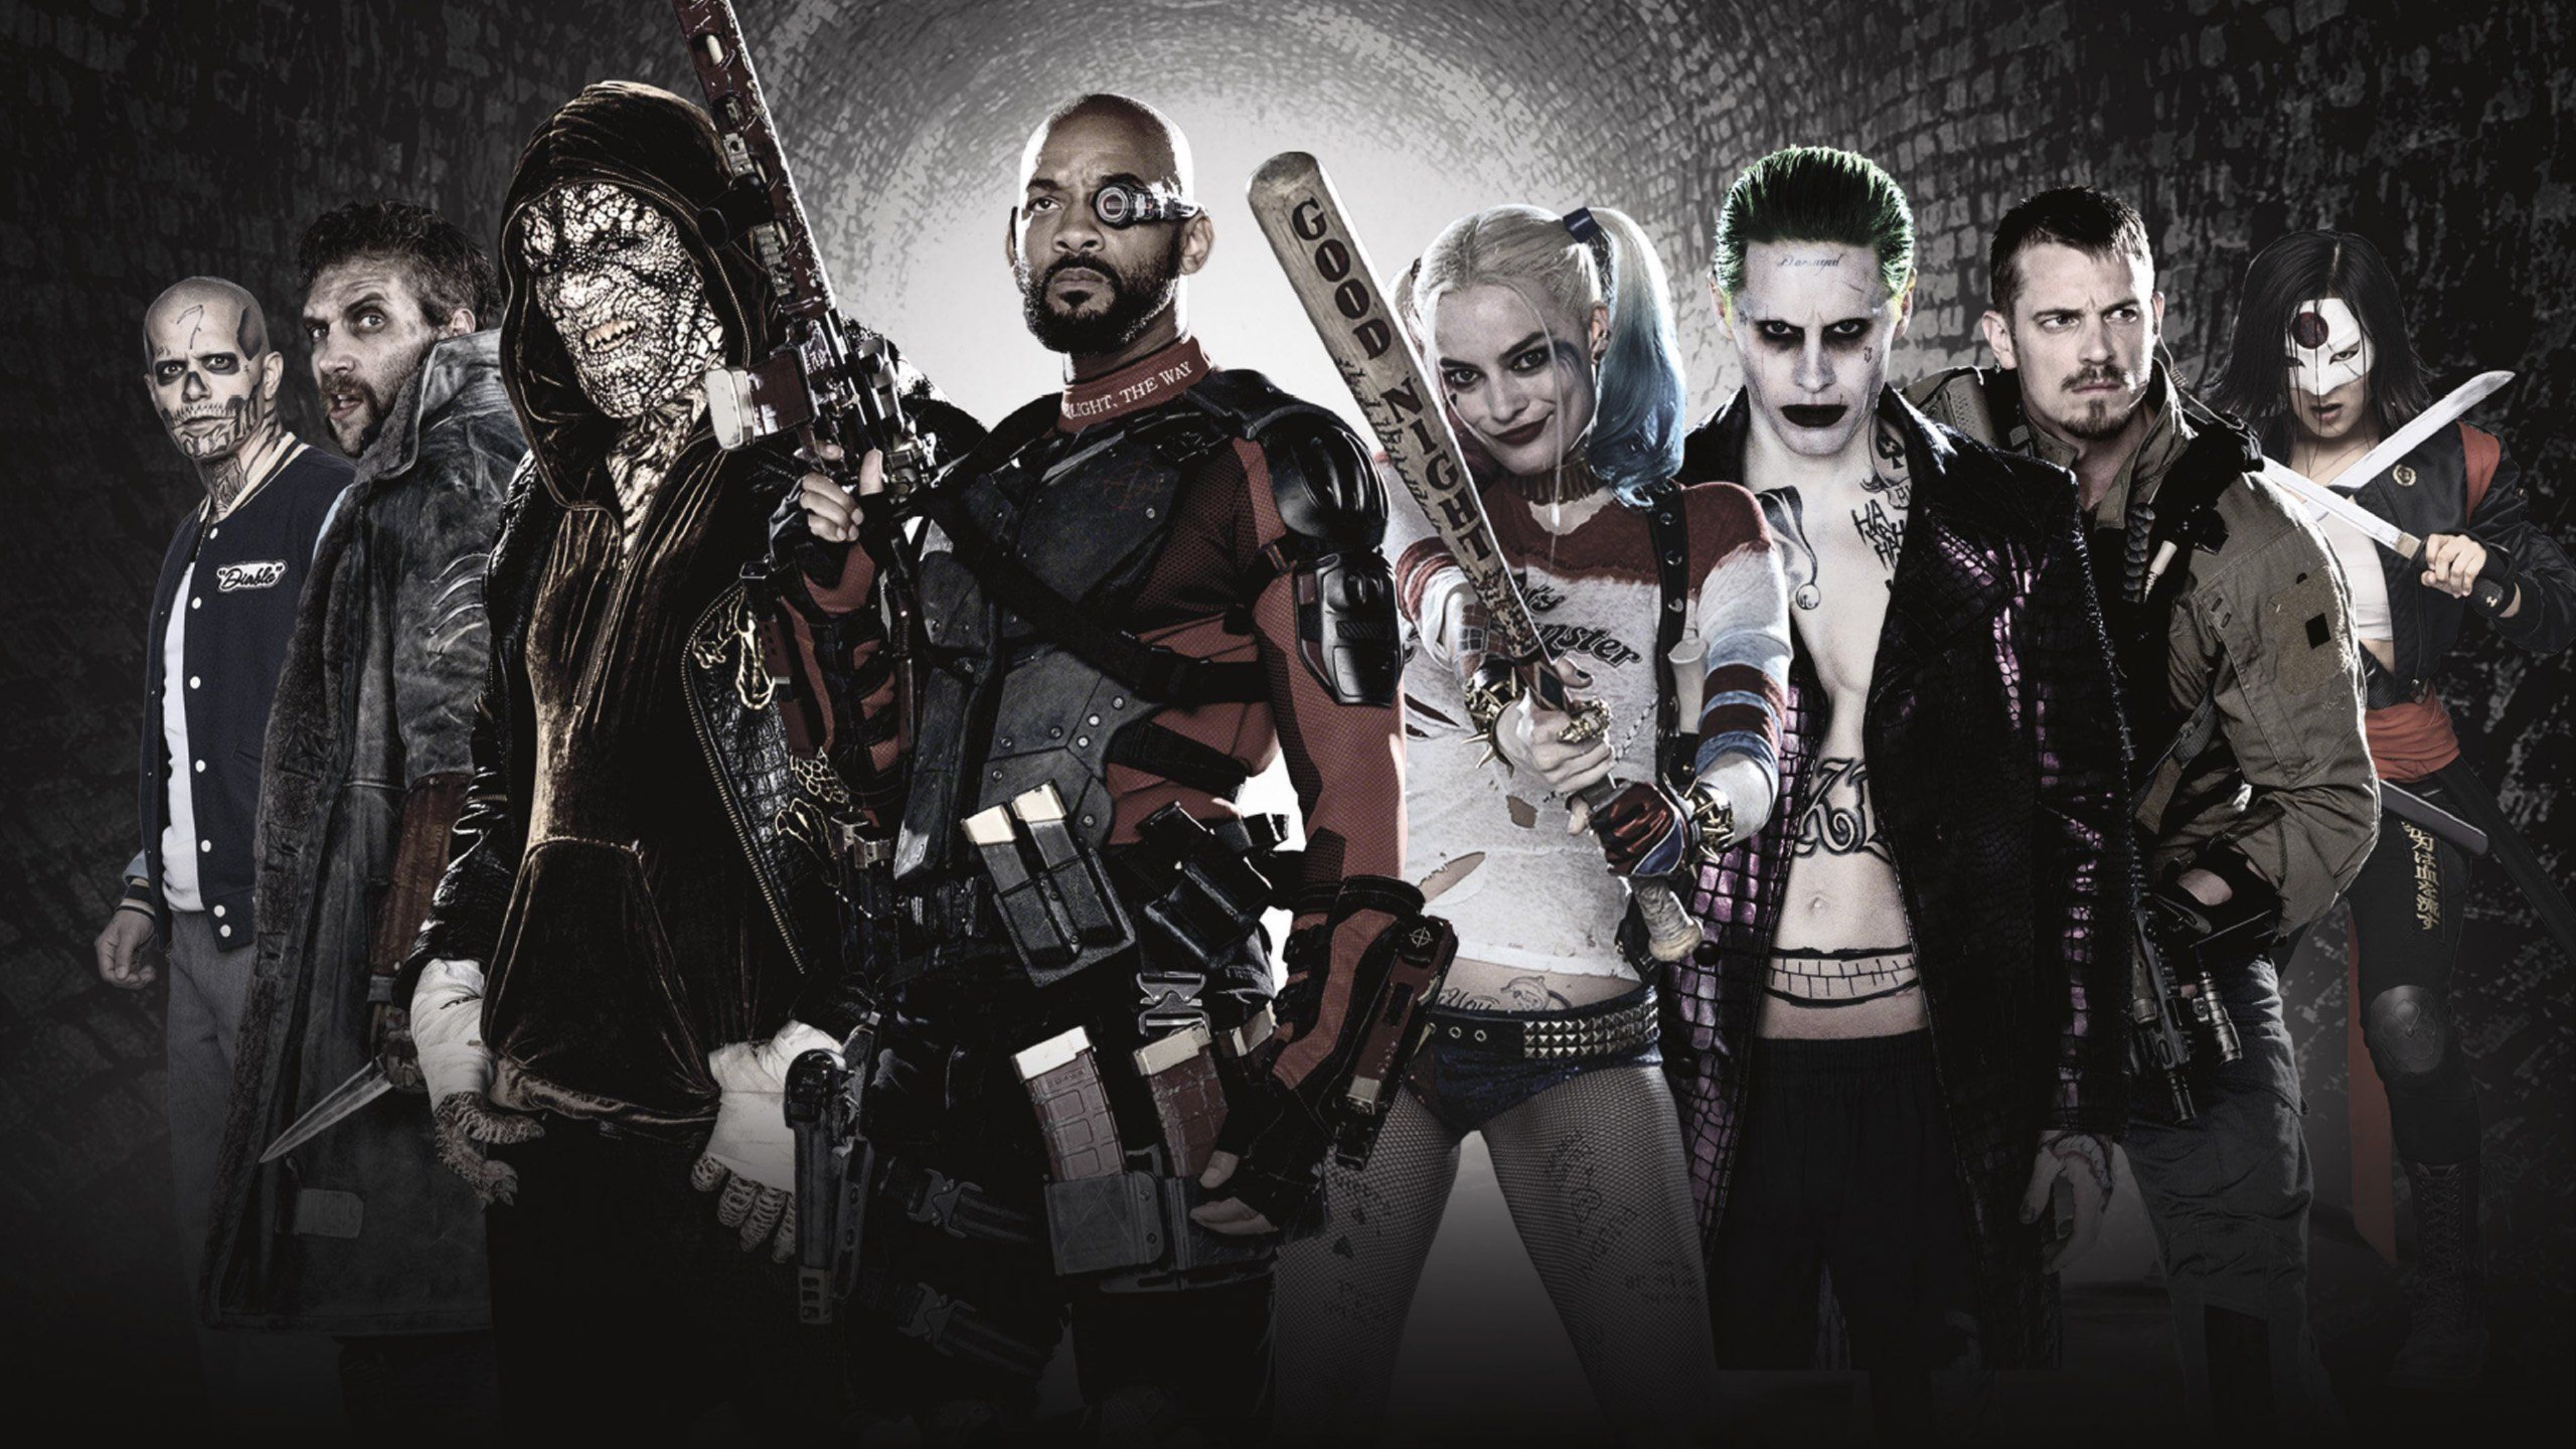 suicide squad new poster 1536363827 - Suicide Squad New Poster - suicide squad wallpapers, movies wallpapers, 2016 movies wallpapers